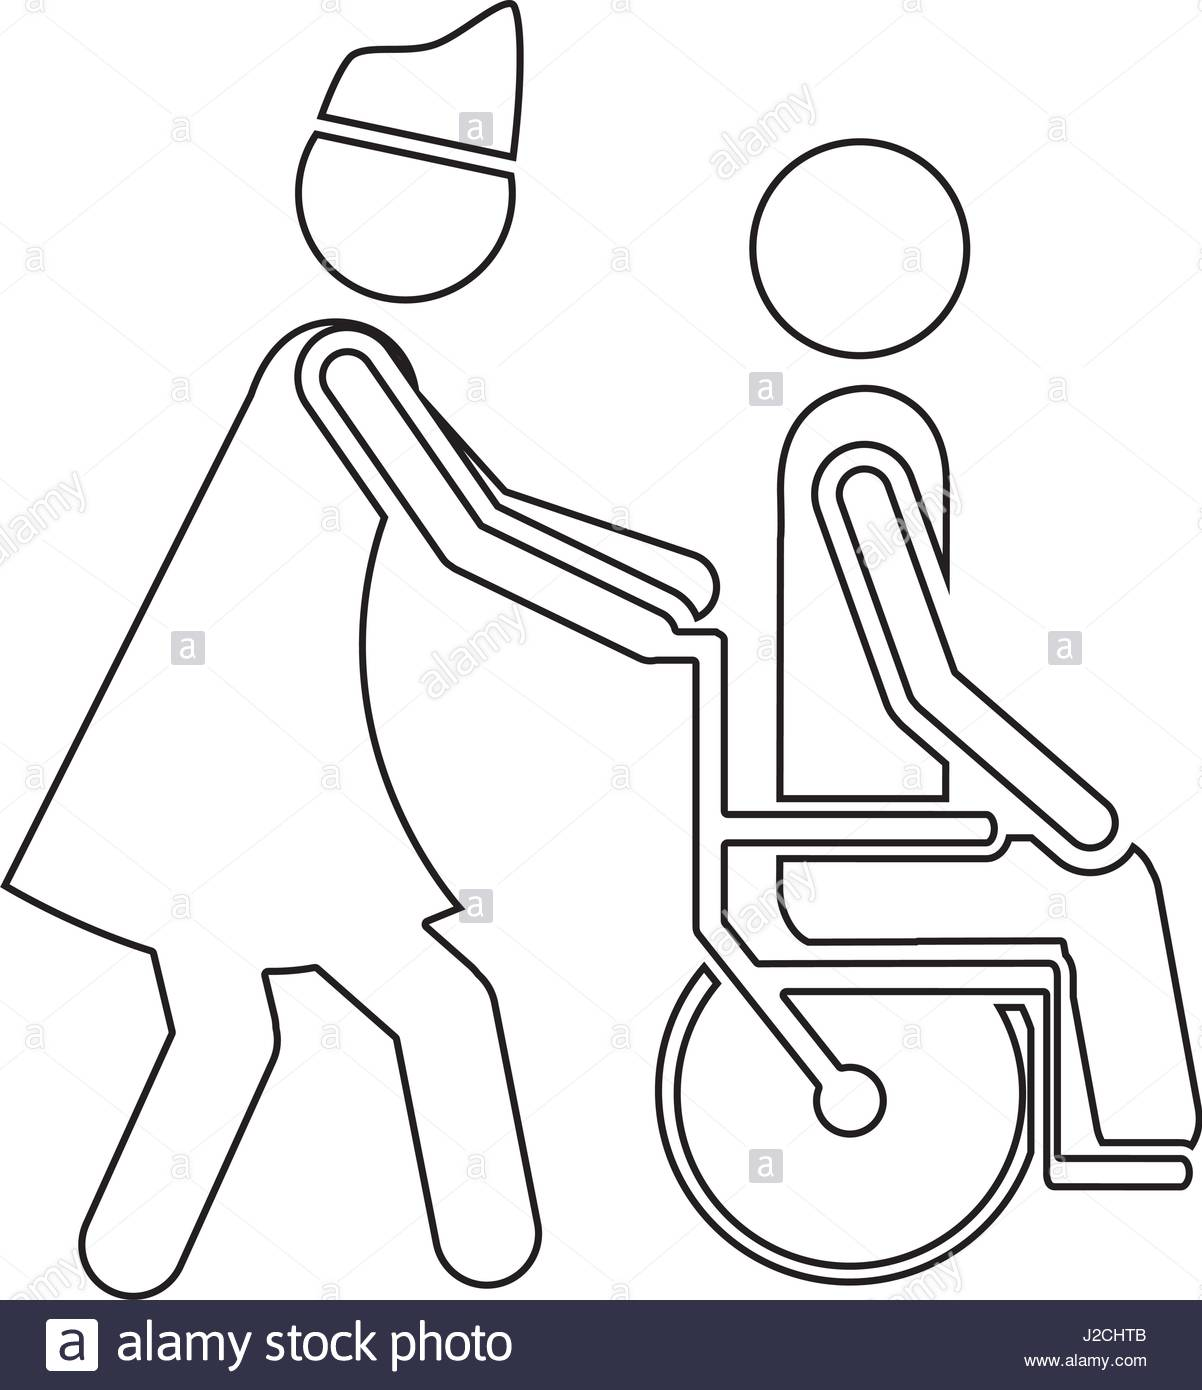 1202x1390 Silhouette Nurse Helping Another Person Push A Wheelchair Stock